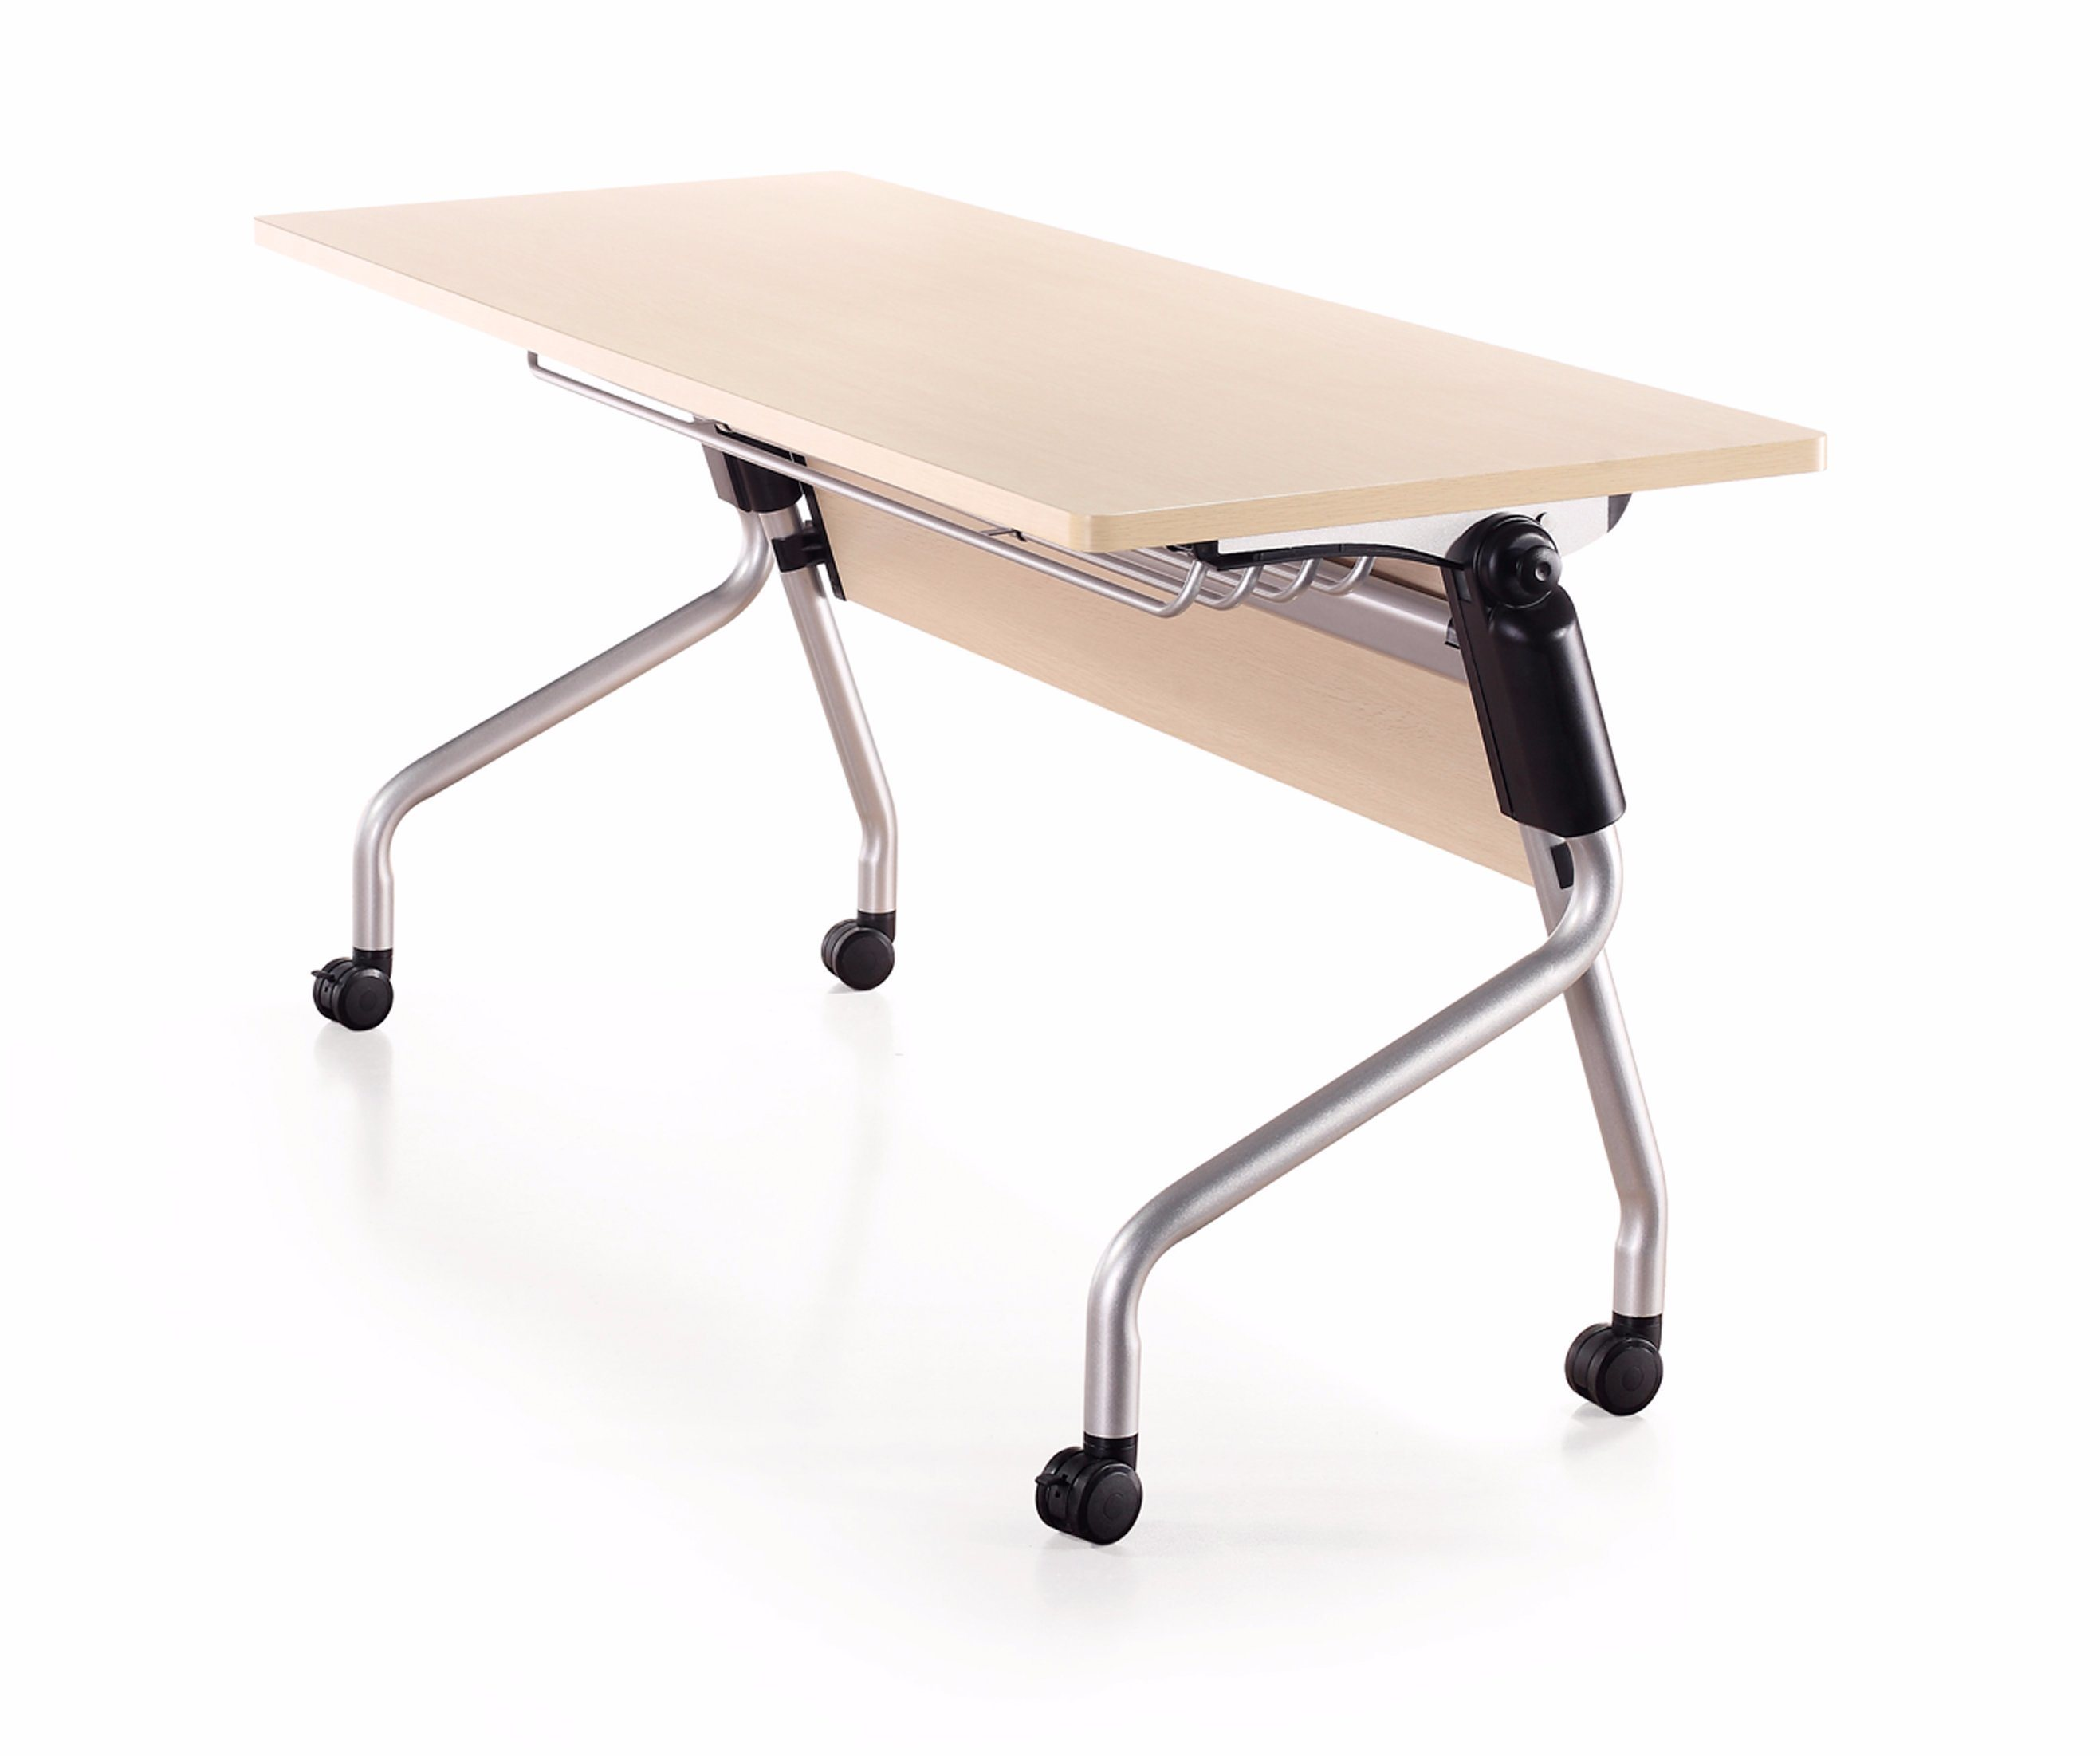 China Foldable Conference Desk Meeting Room Tables Photos Pictures - Fold away conference table